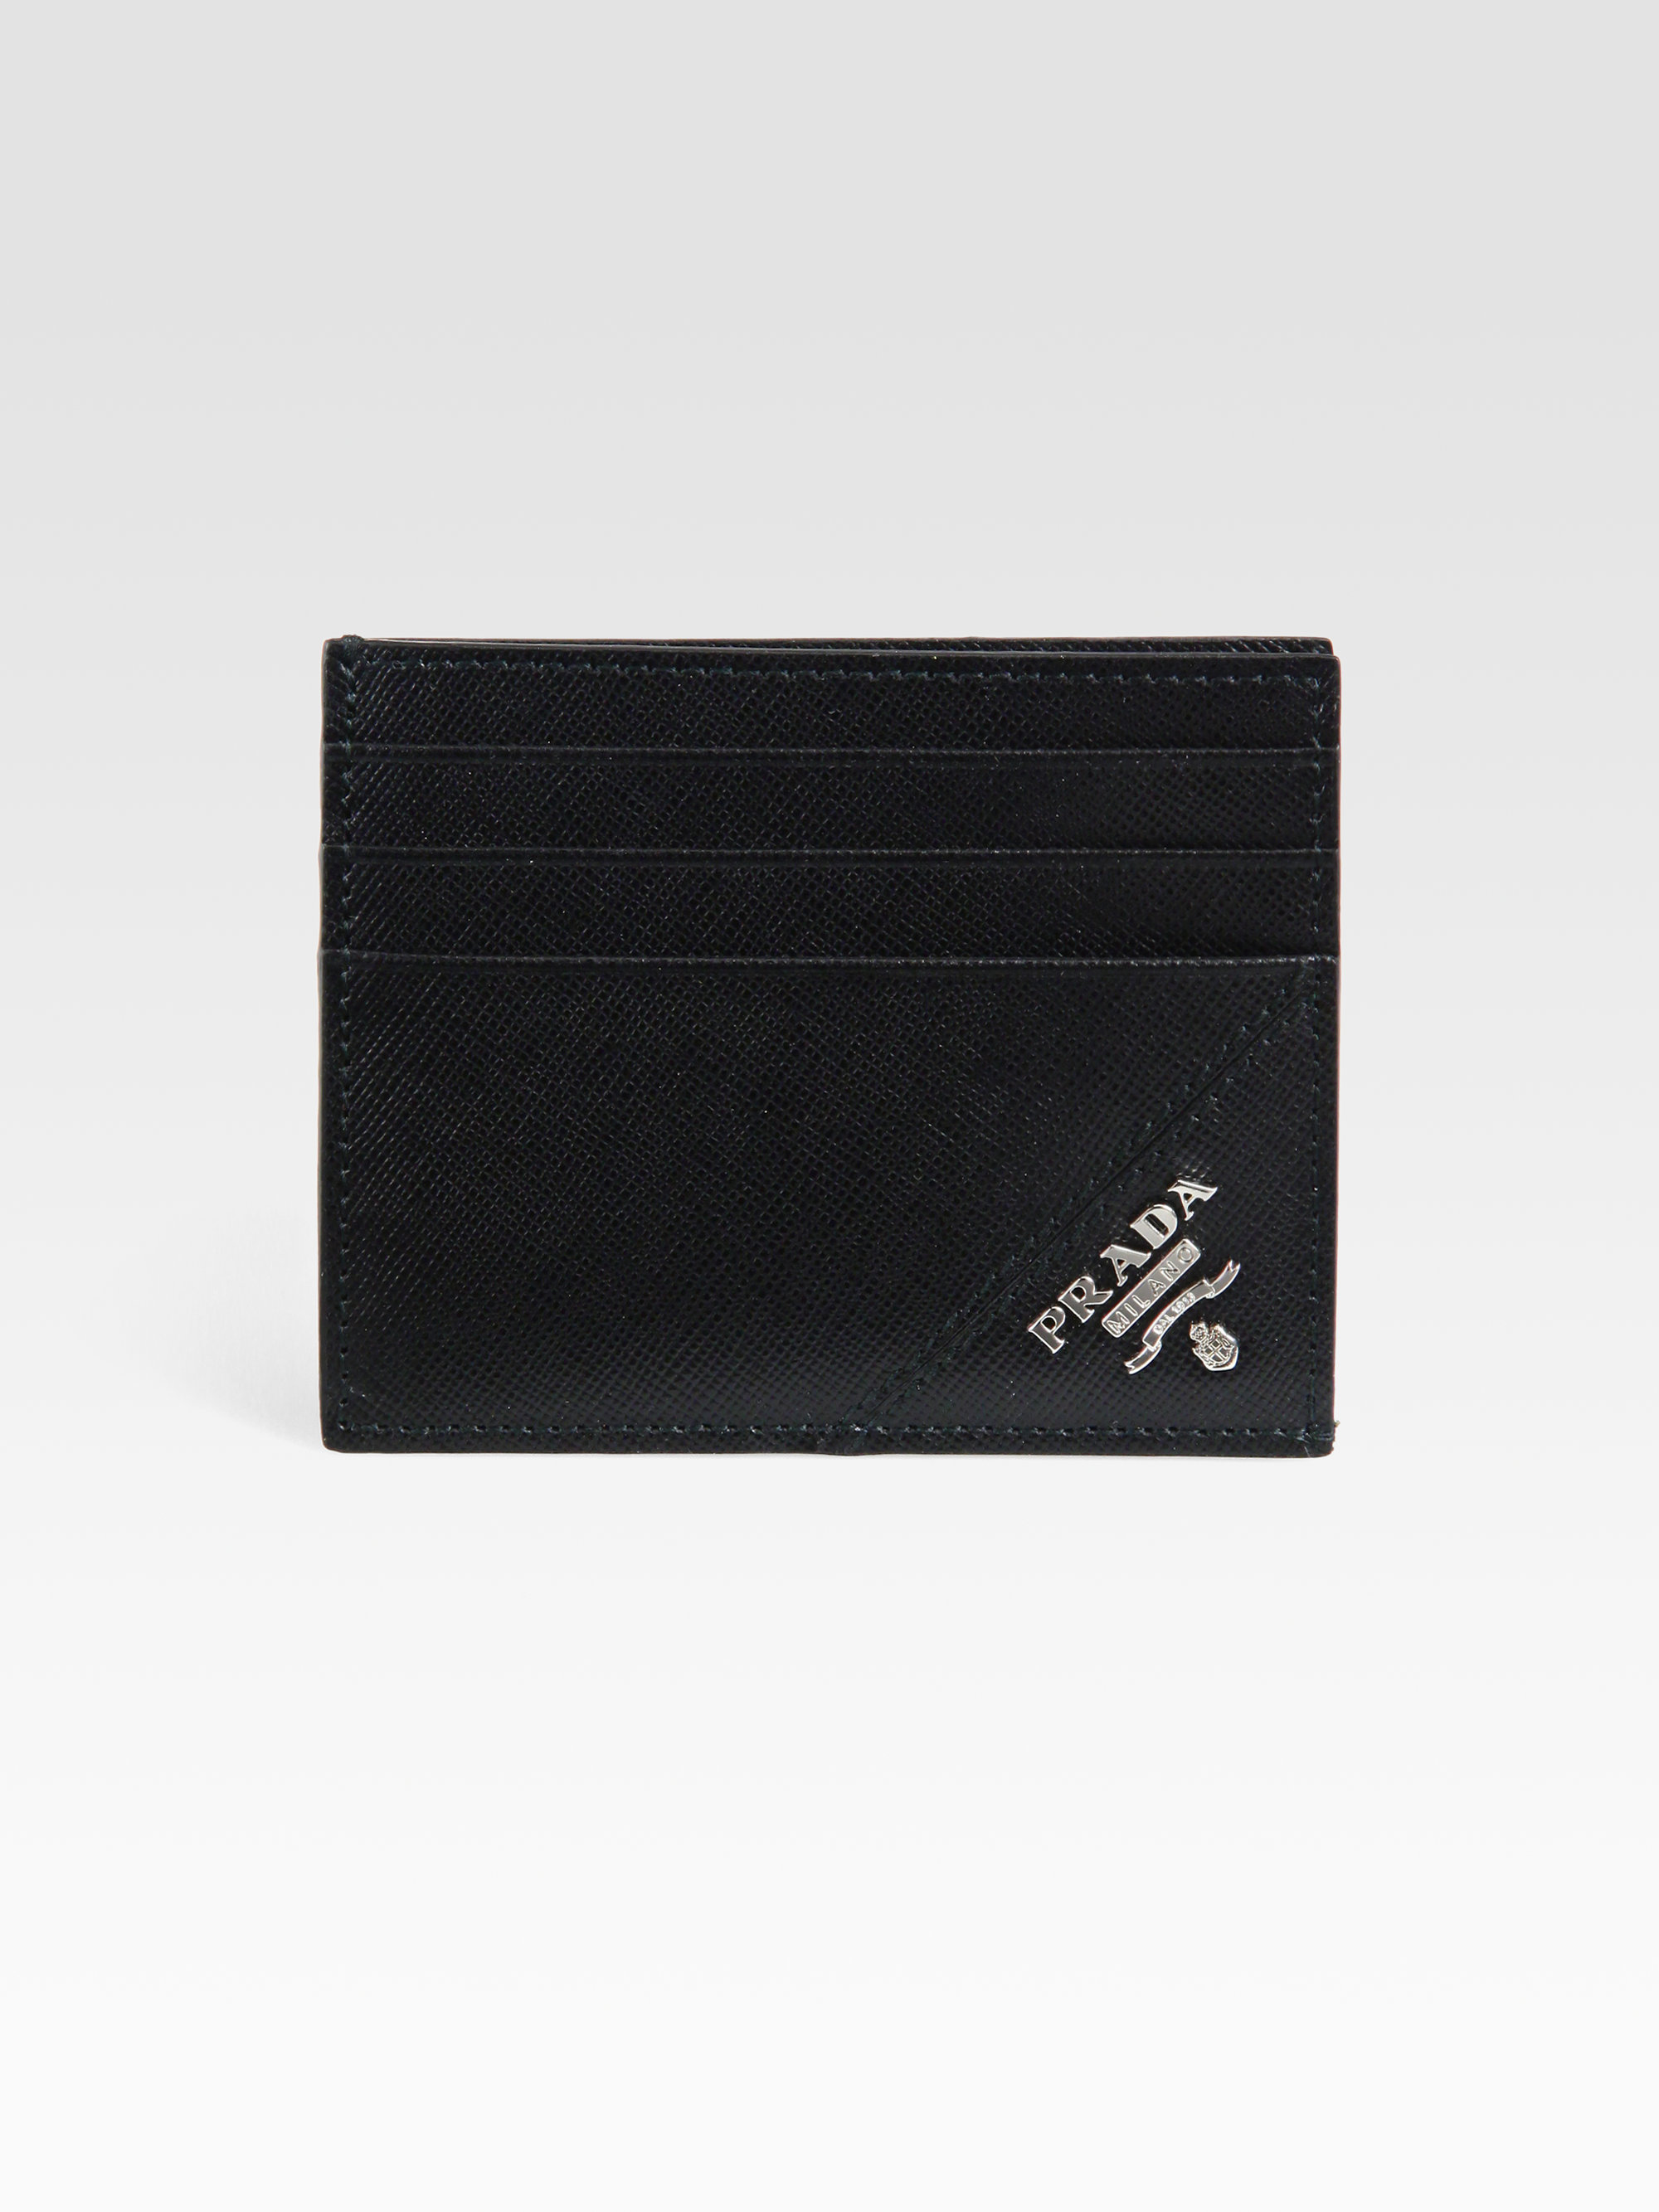 8c587346a127 Prada Saffiano Leather Credit Card Case in Black - Lyst